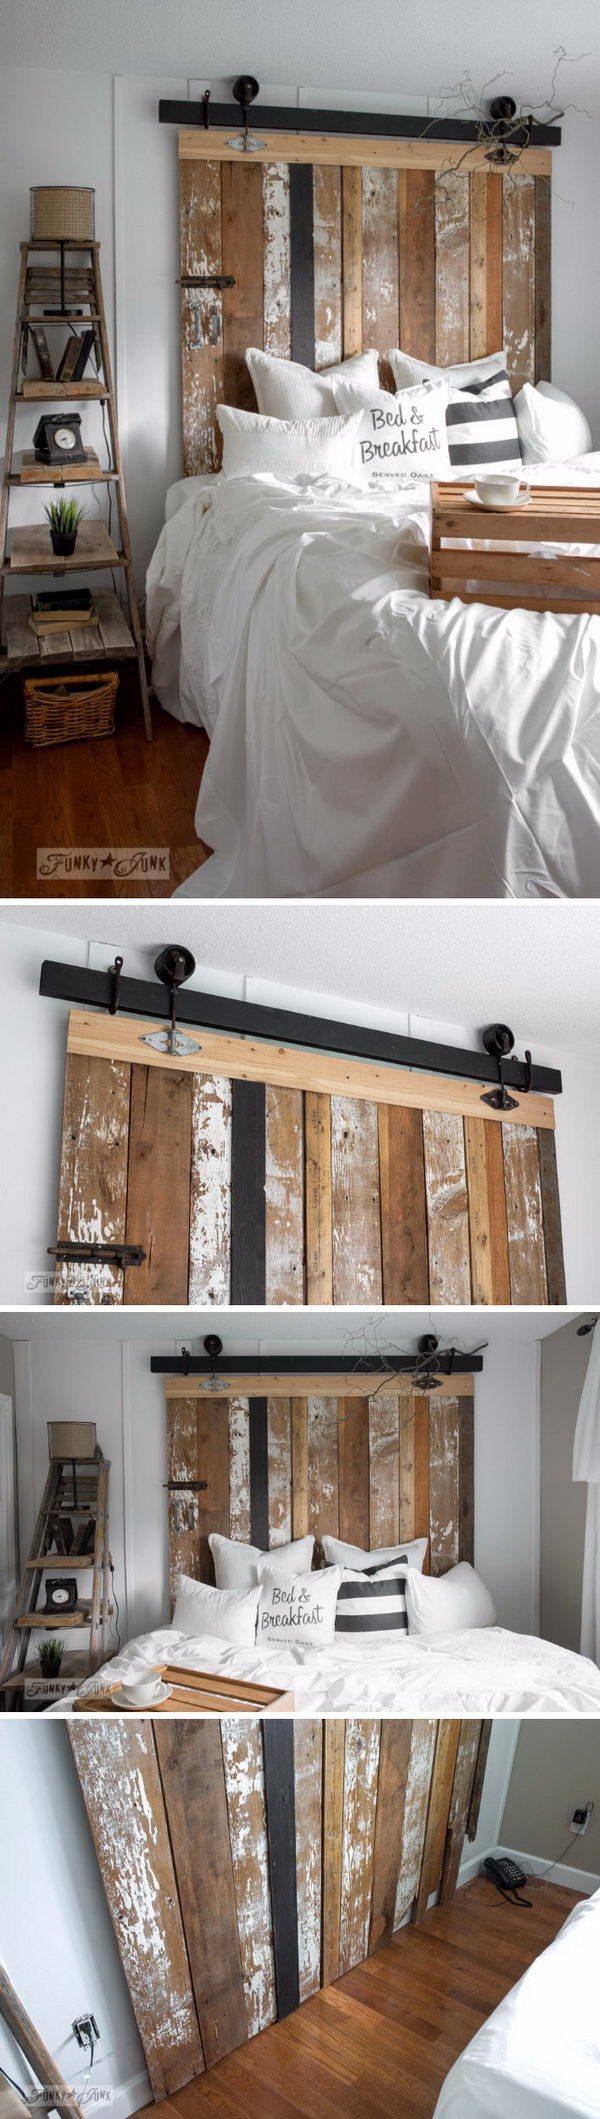 Backboard Ideas DIY Reclaimed Wood Barn Door Headboard With Faux Hardware